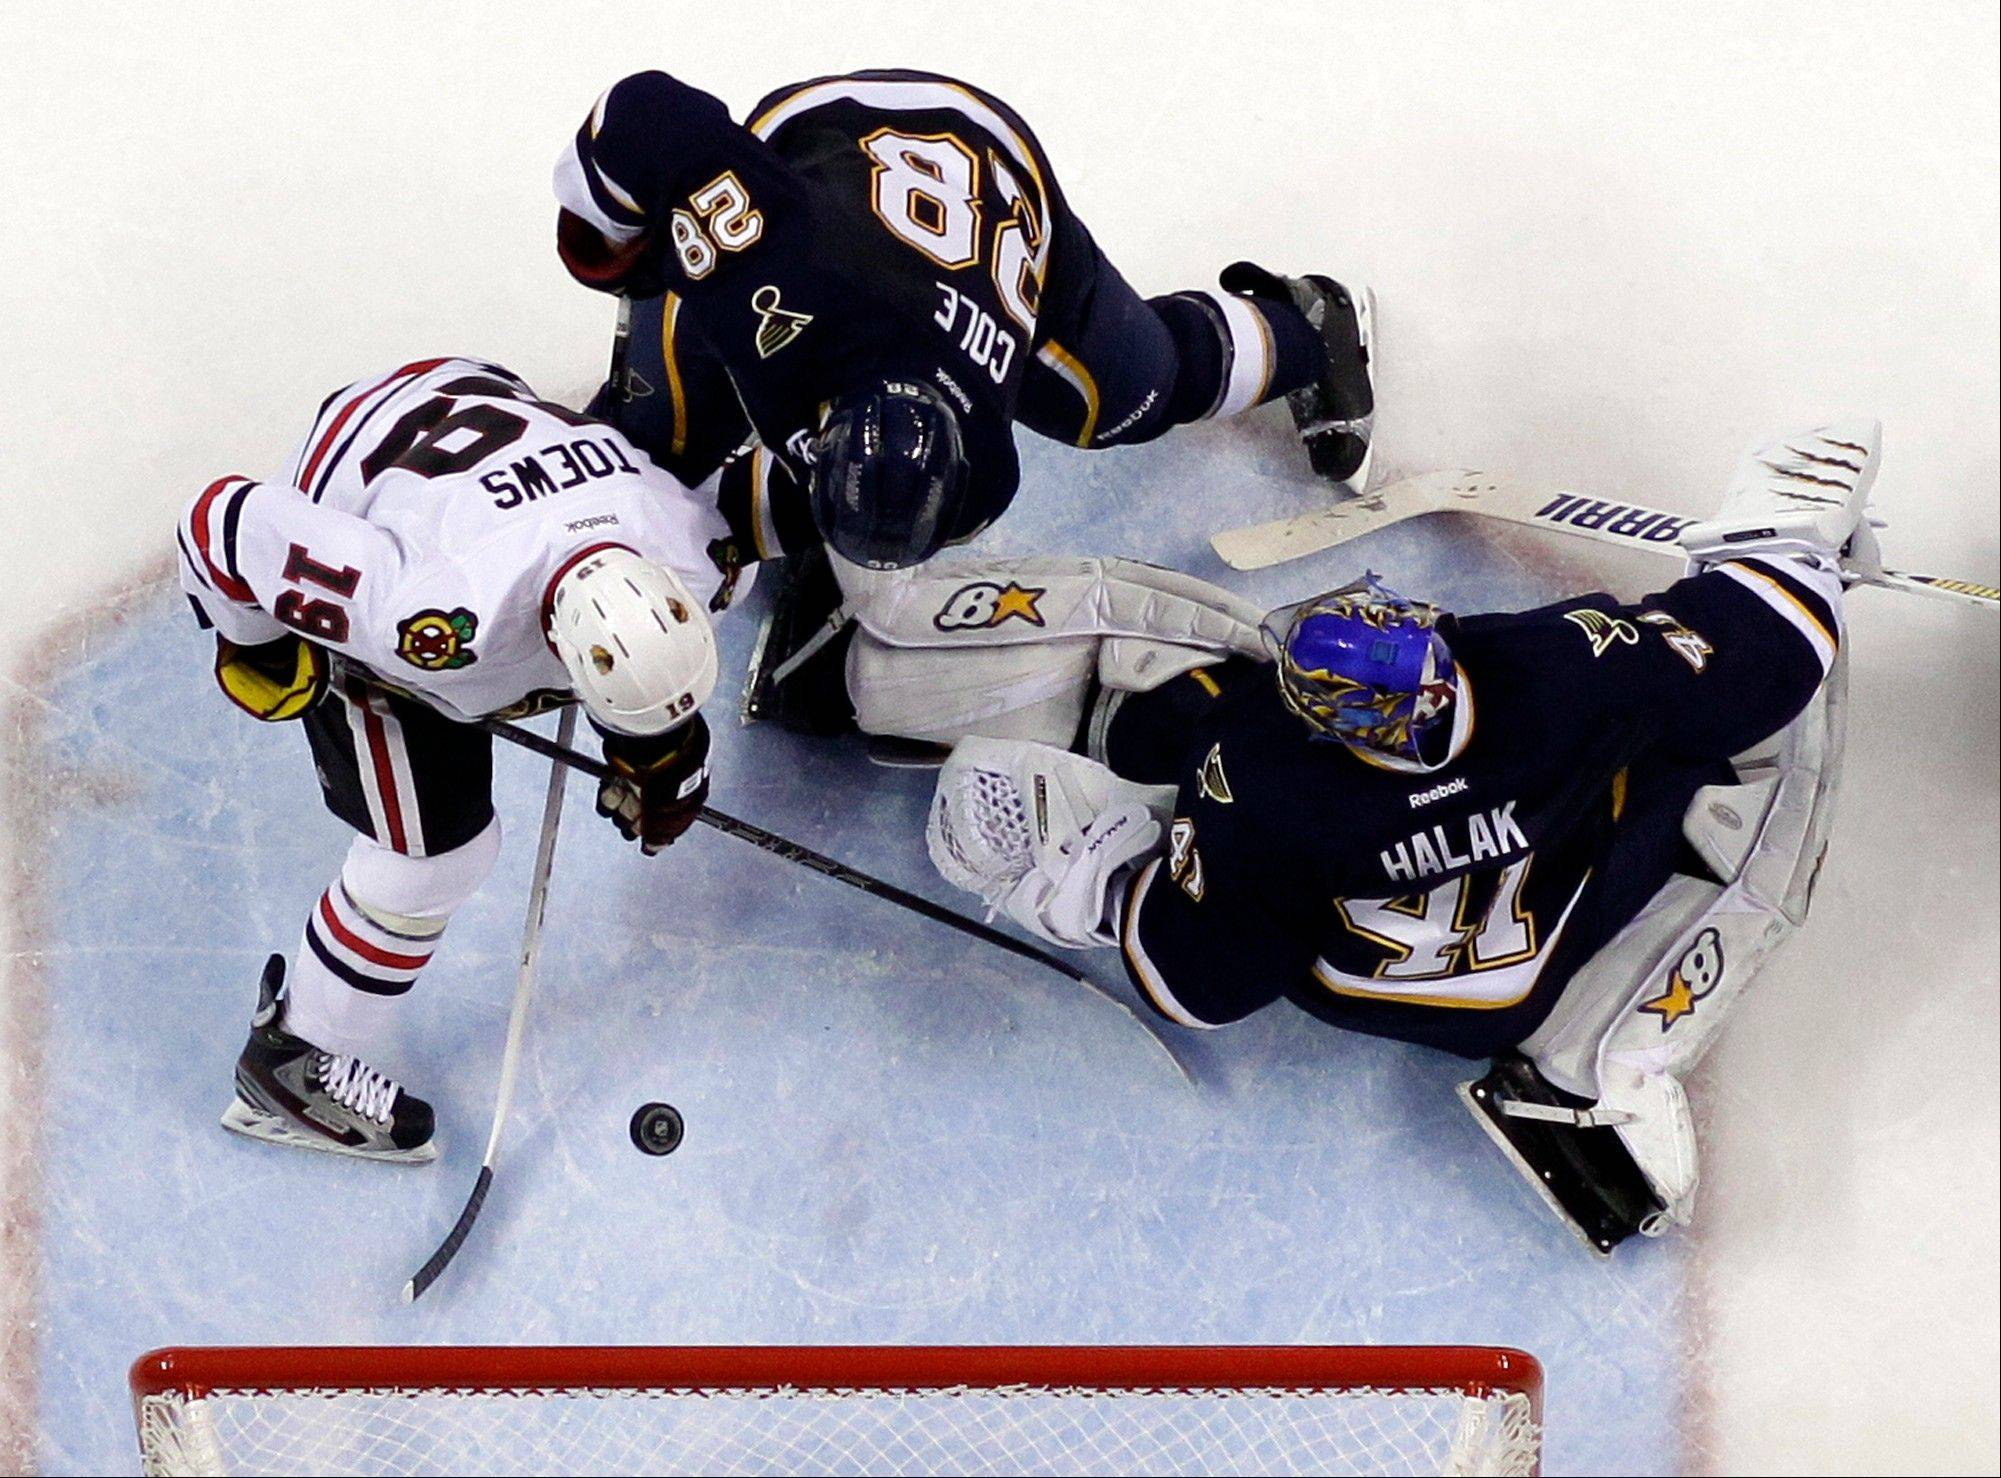 Chicago Blackhawks' Jonathan Toews, left, scores his second goal of an NHL hockey game as St. Louis Blues goalie Jaroslav Halak and Ian Cole, center, defend.